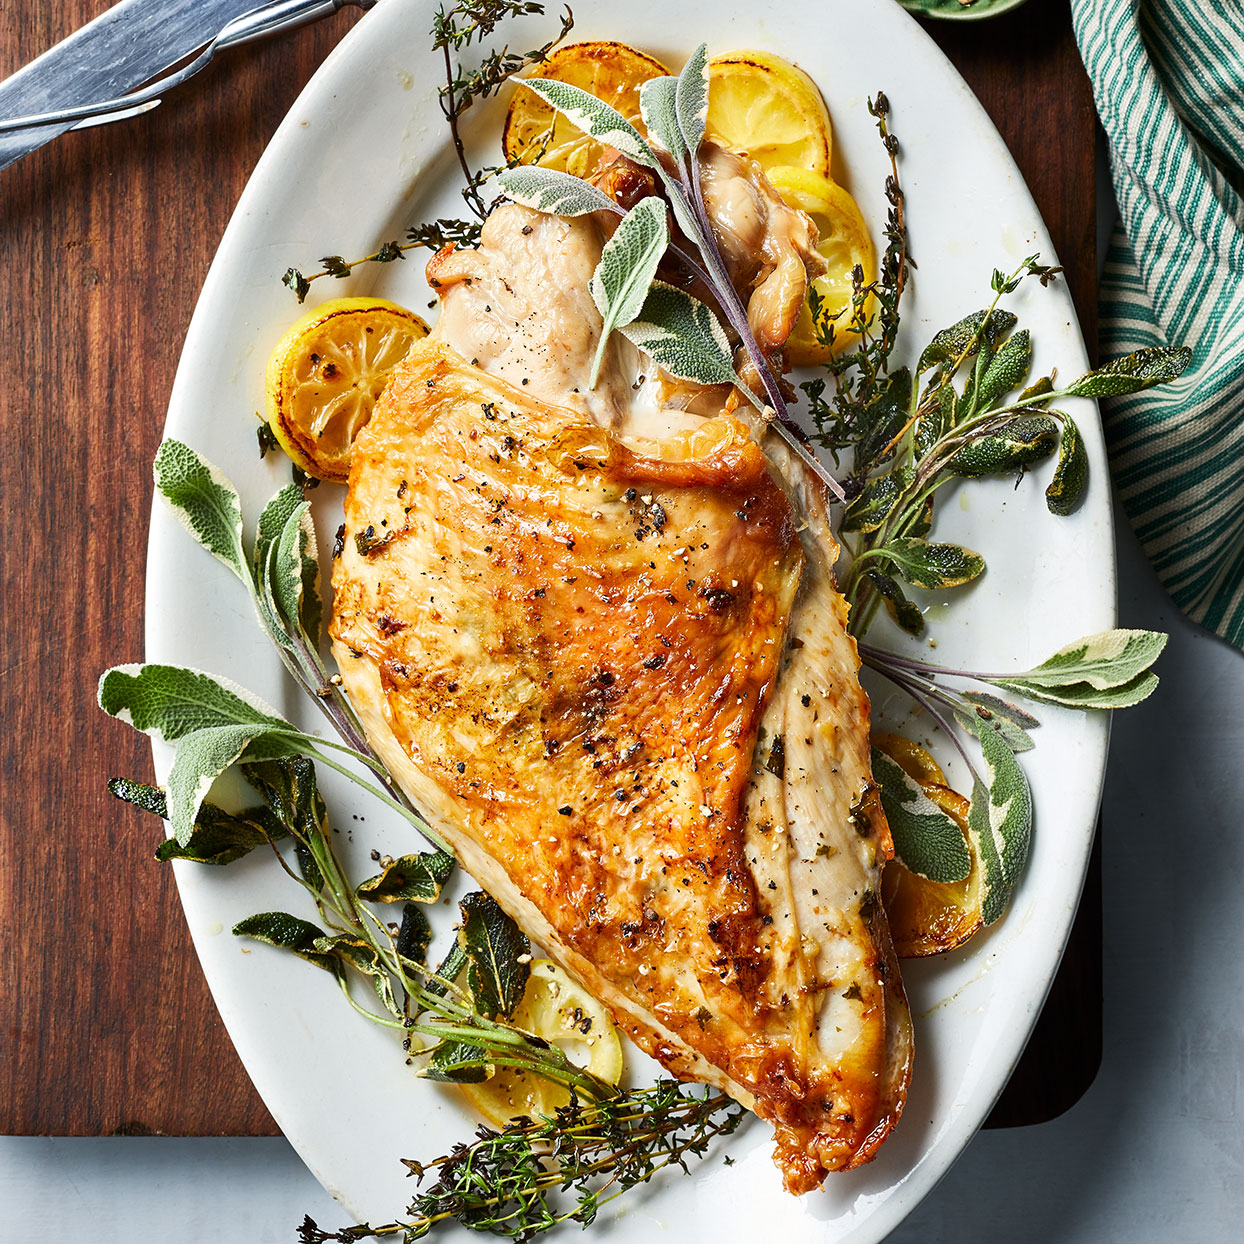 If you're scaling back your Thanksgiving dinner this year, this bone-in, skin-on turkey breasts, also called split breasts, are inexpensive and nice for (just enough) leftovers. Roasted garlic, salt and pepper and a few fresh herbs make the breast meat flavorful. This recipe also takes less time than a whole turkey—you start checking for doneness after 30 minutes in the oven.